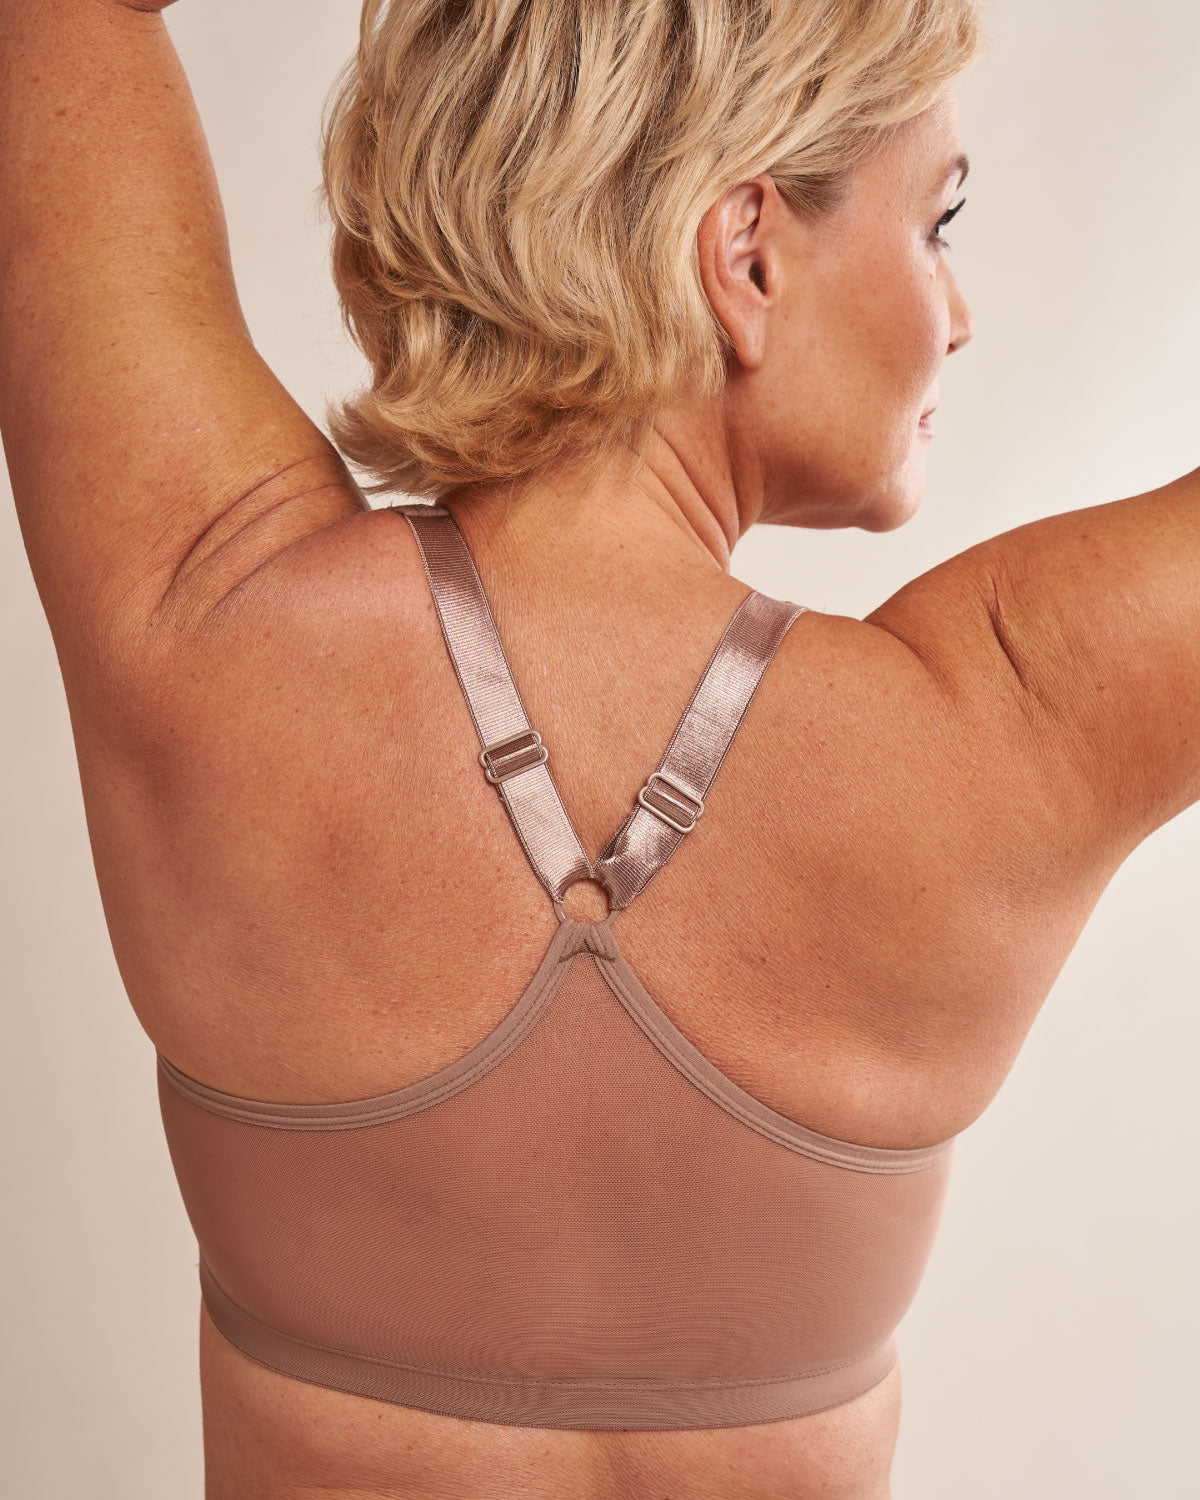 Sand, pocketed front closure sports bra with soft wireless cups, adjustable straps and mesh paneling on cross back, on a flap reconstructed model.